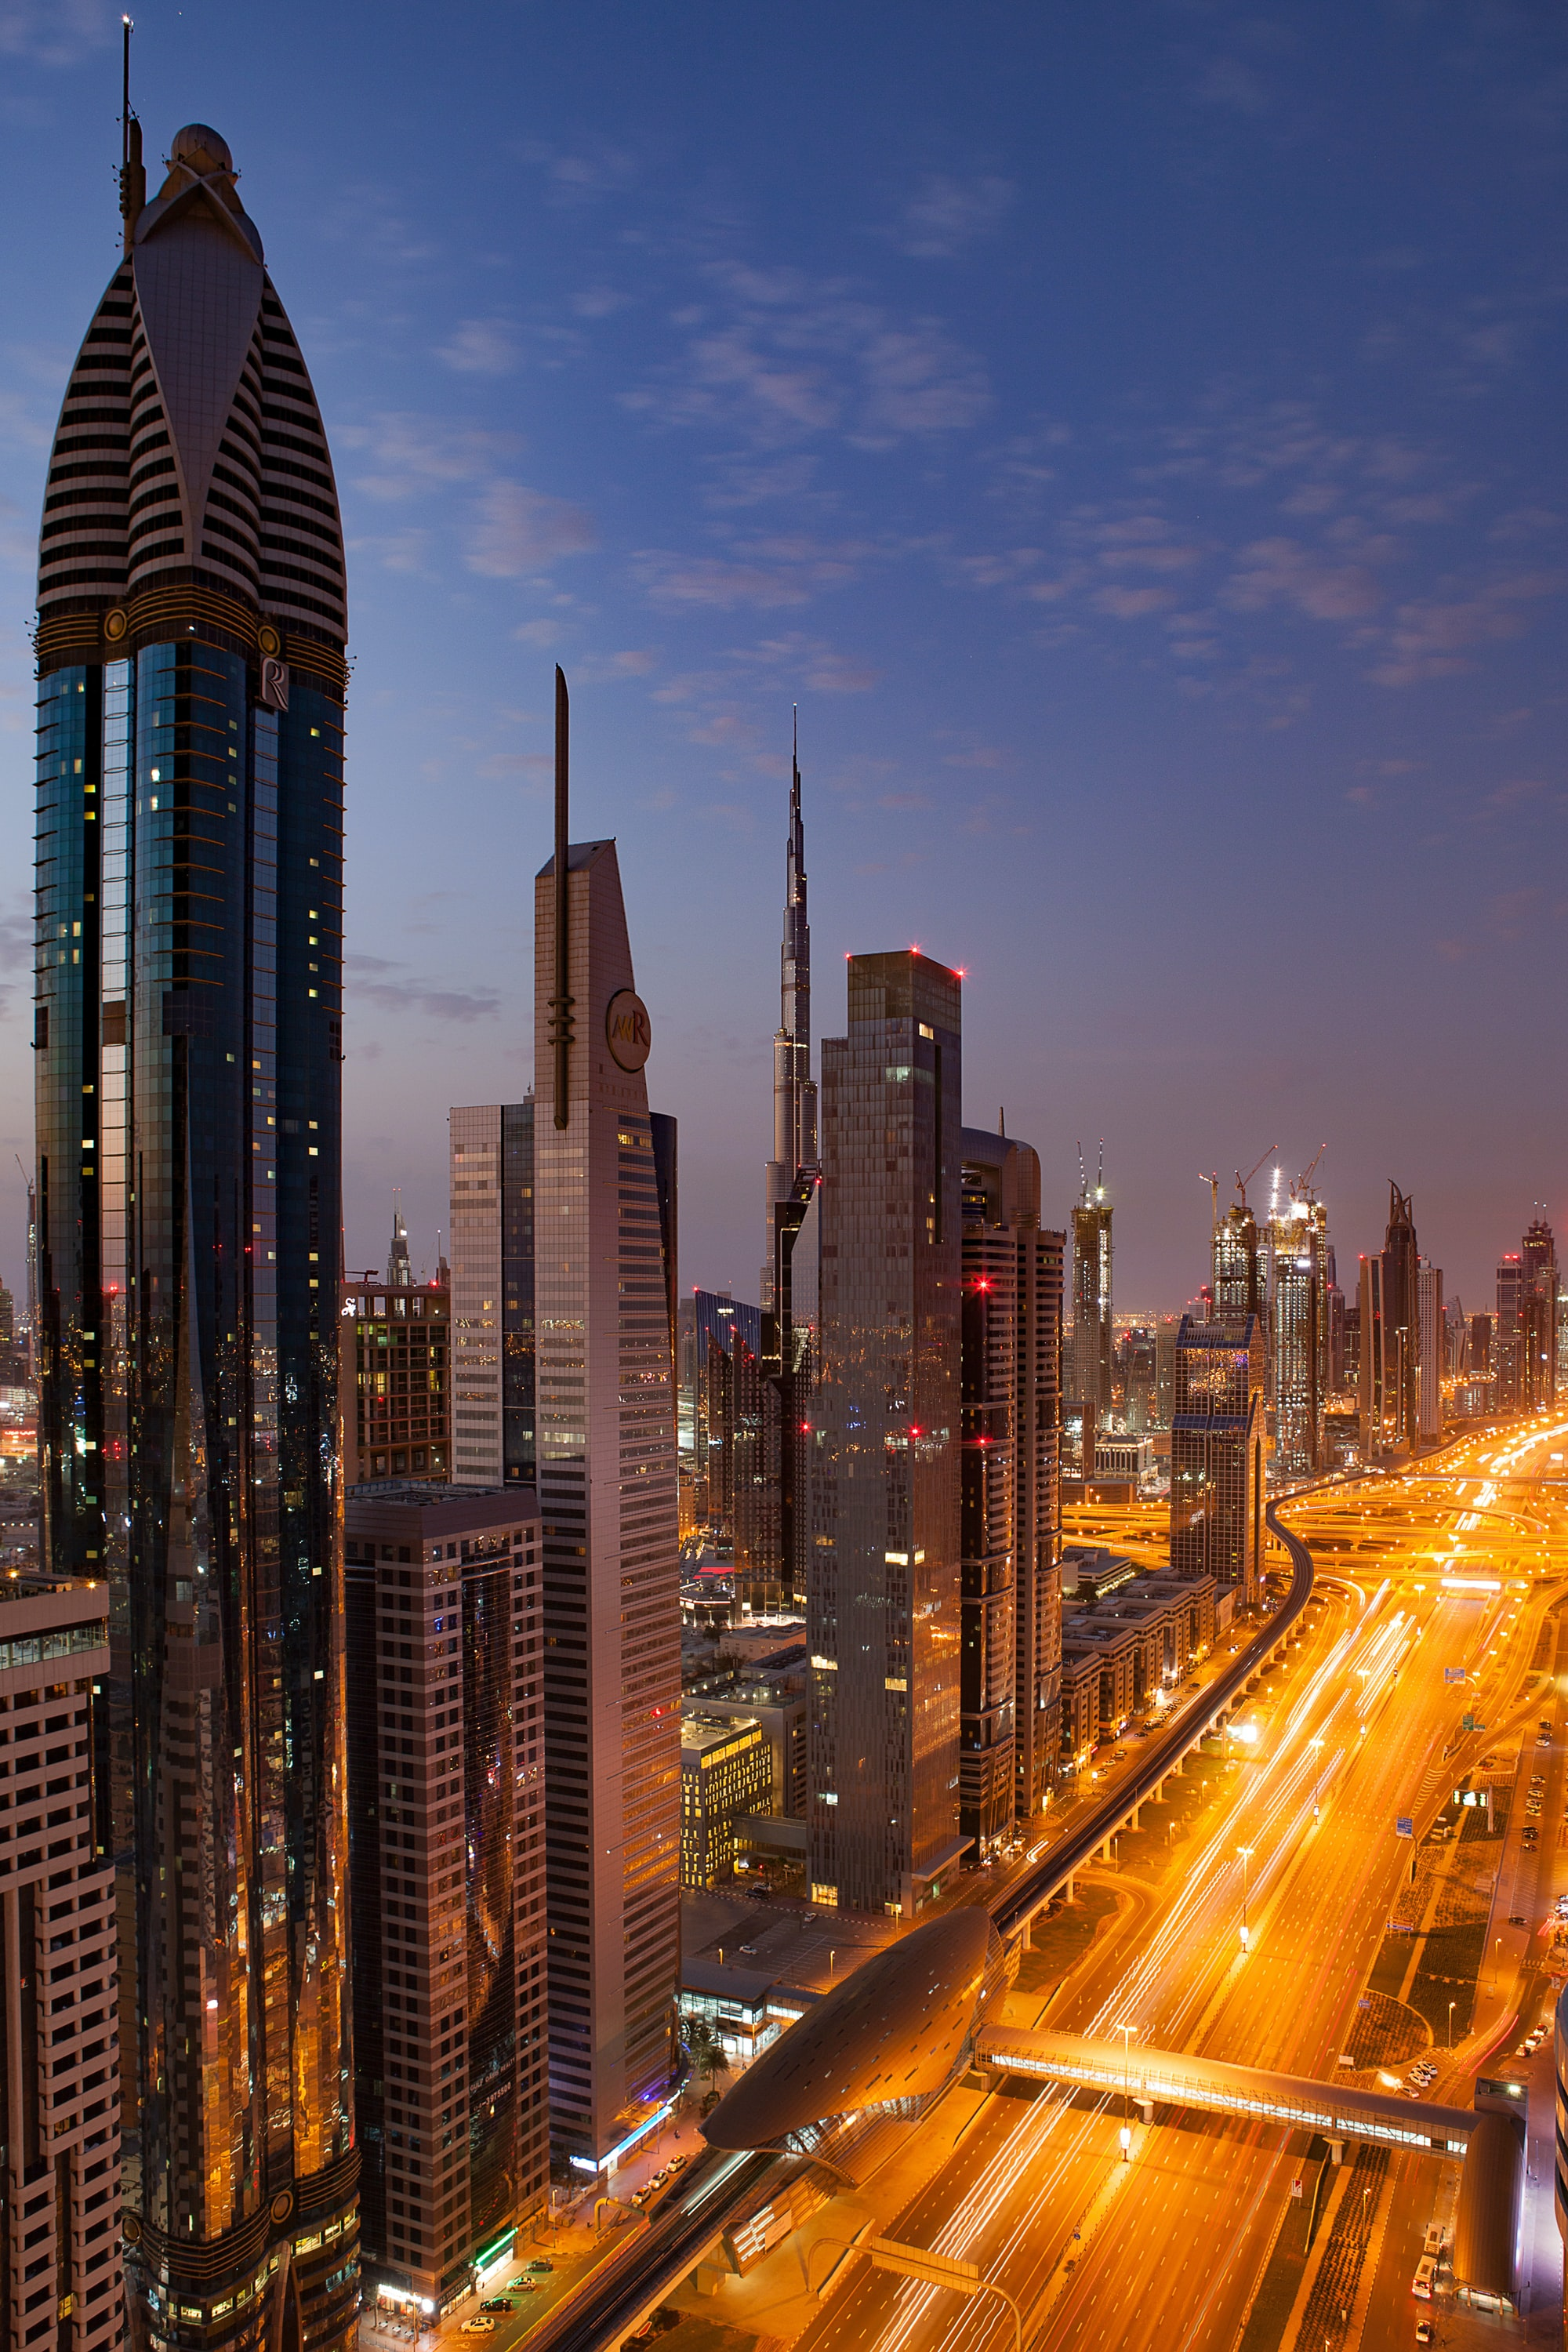 Taken on a cool winter morning in Dubai as part of a photo workshop